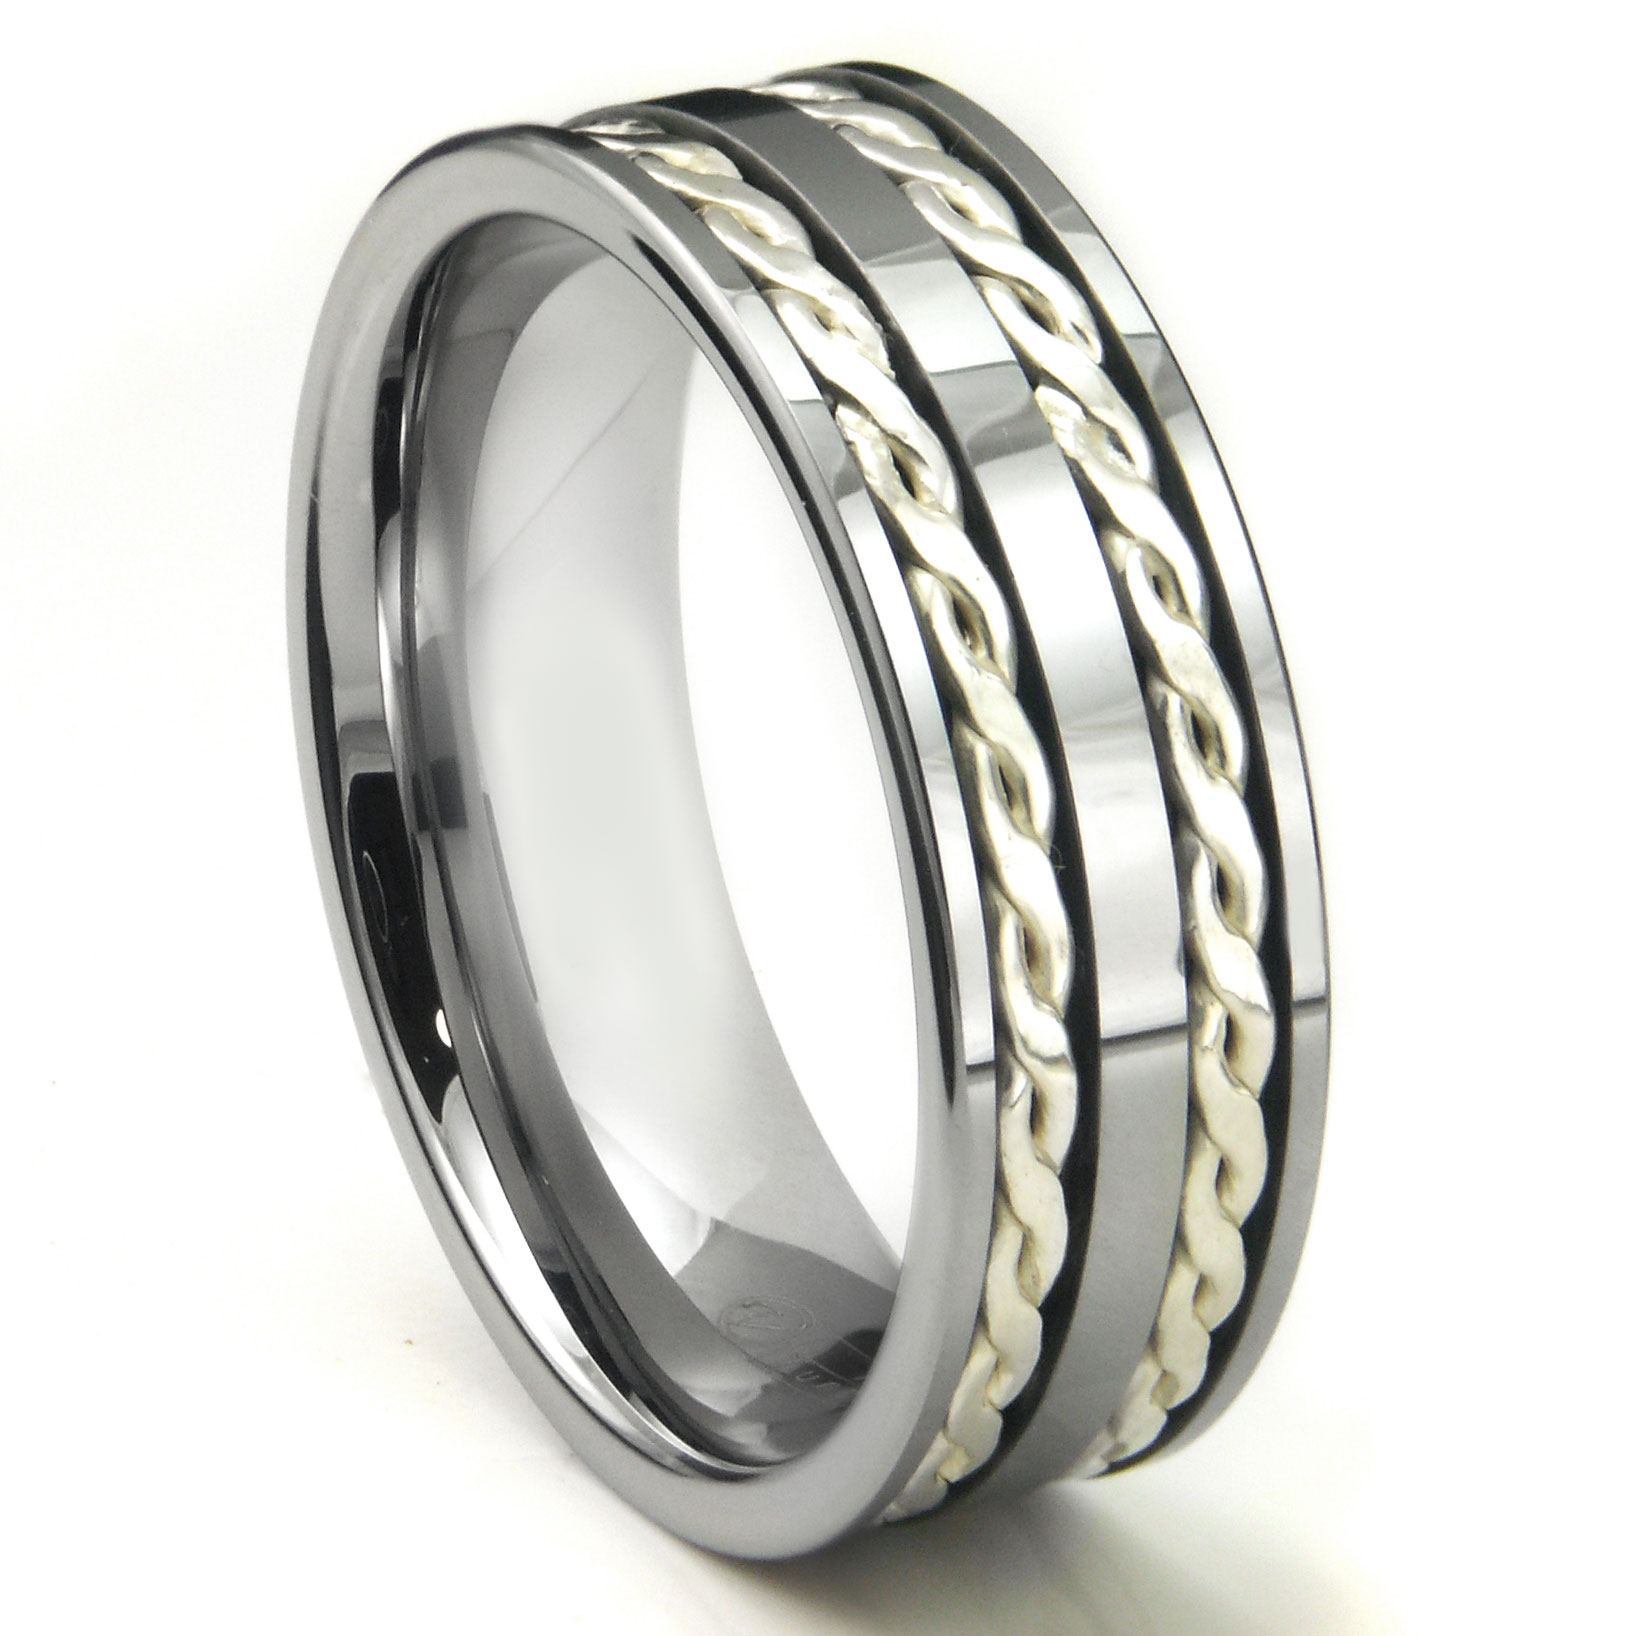 steel s ring women band tungsten pcs stainless men cut set hers his classic engagement sets round bands wedding